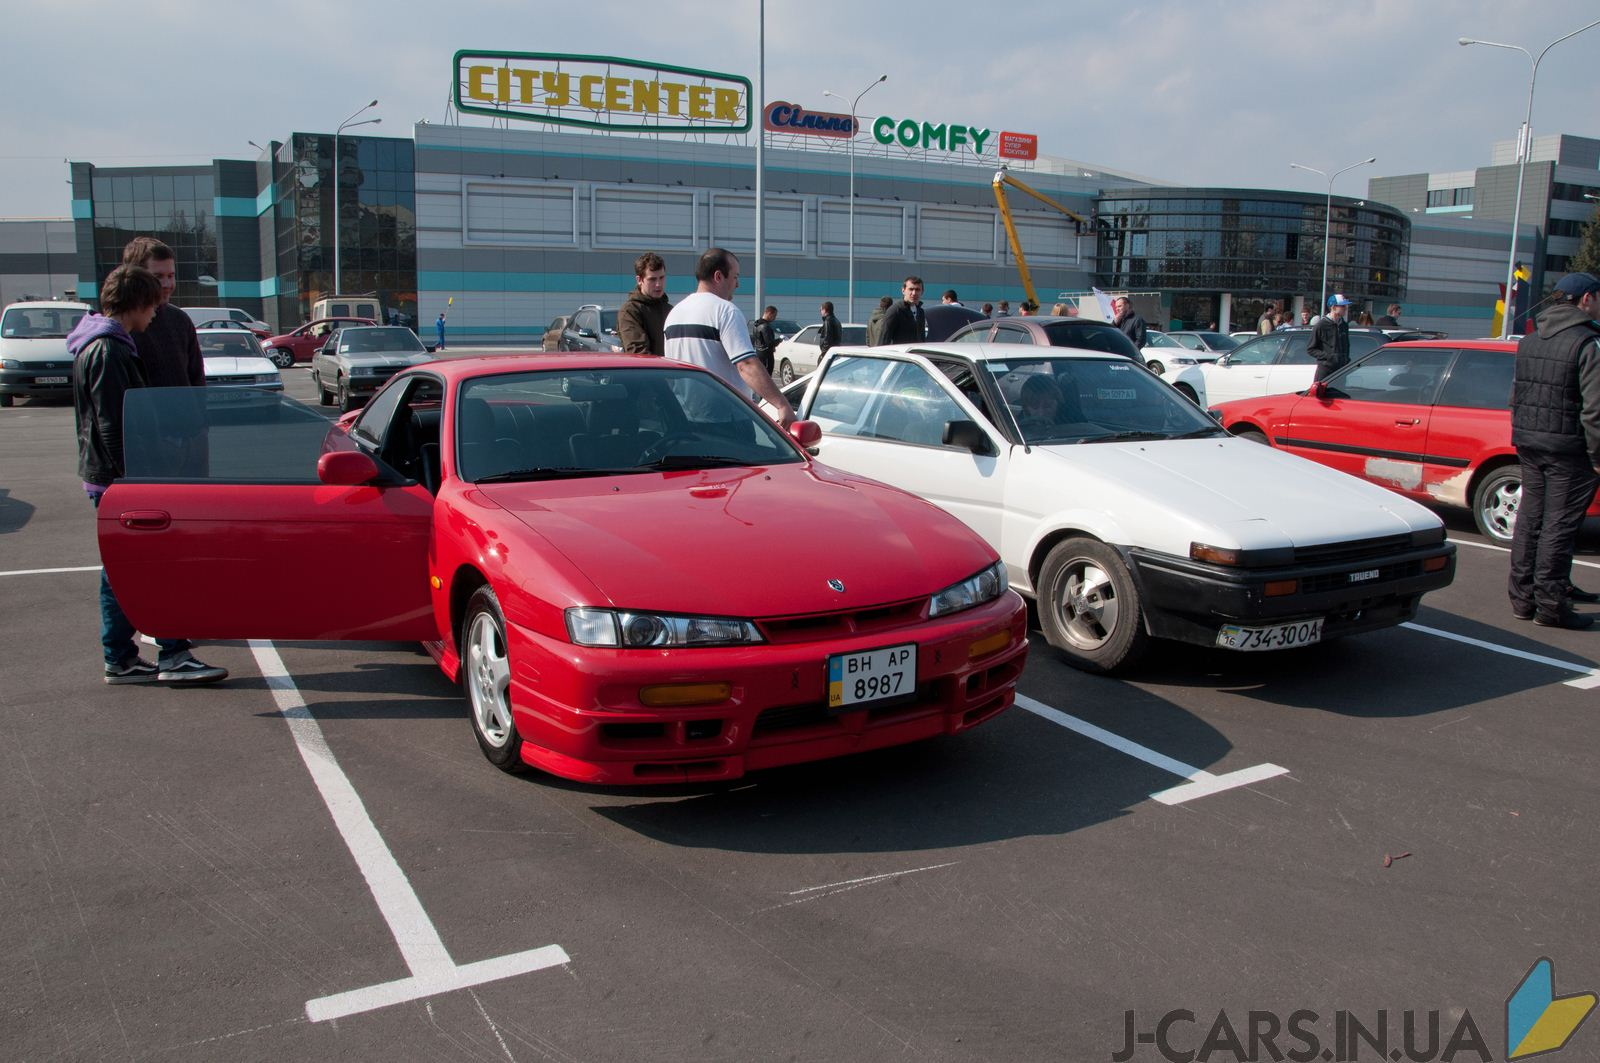 j-cars.in.ua клуб сбор